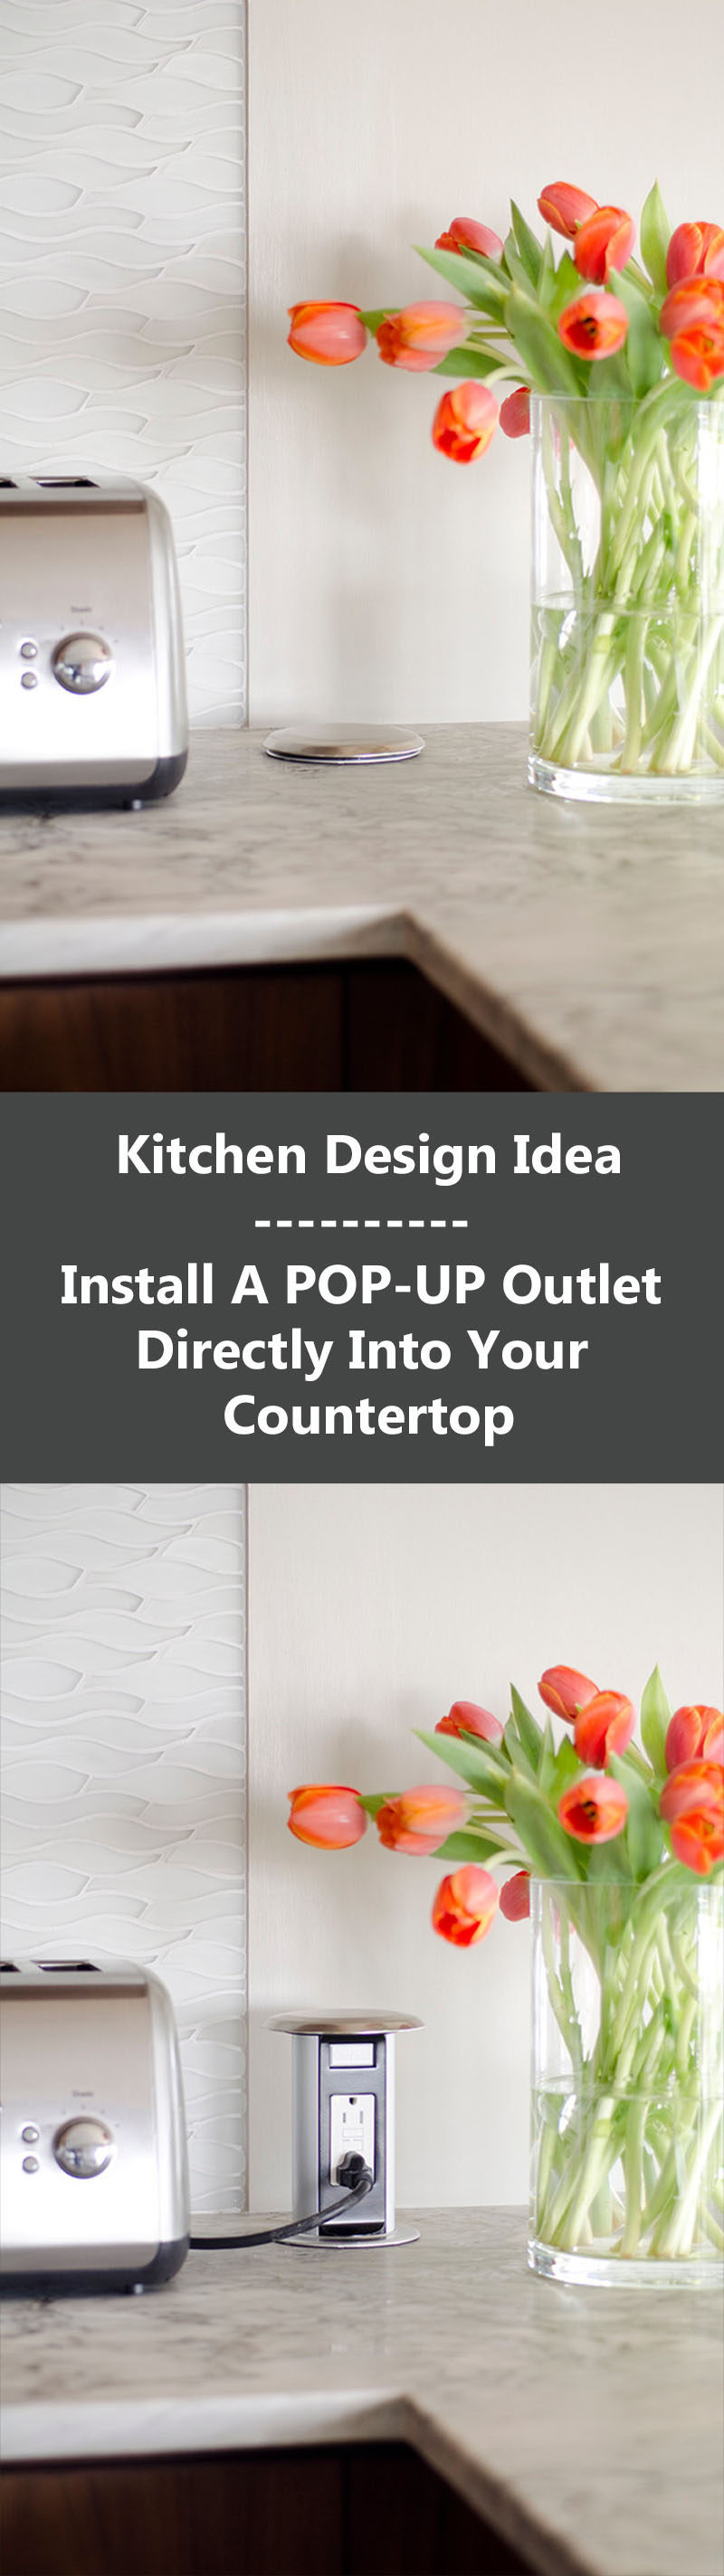 Kitchen Design Idea - Install A Pop Up Outlet Directly Into Your Countertop